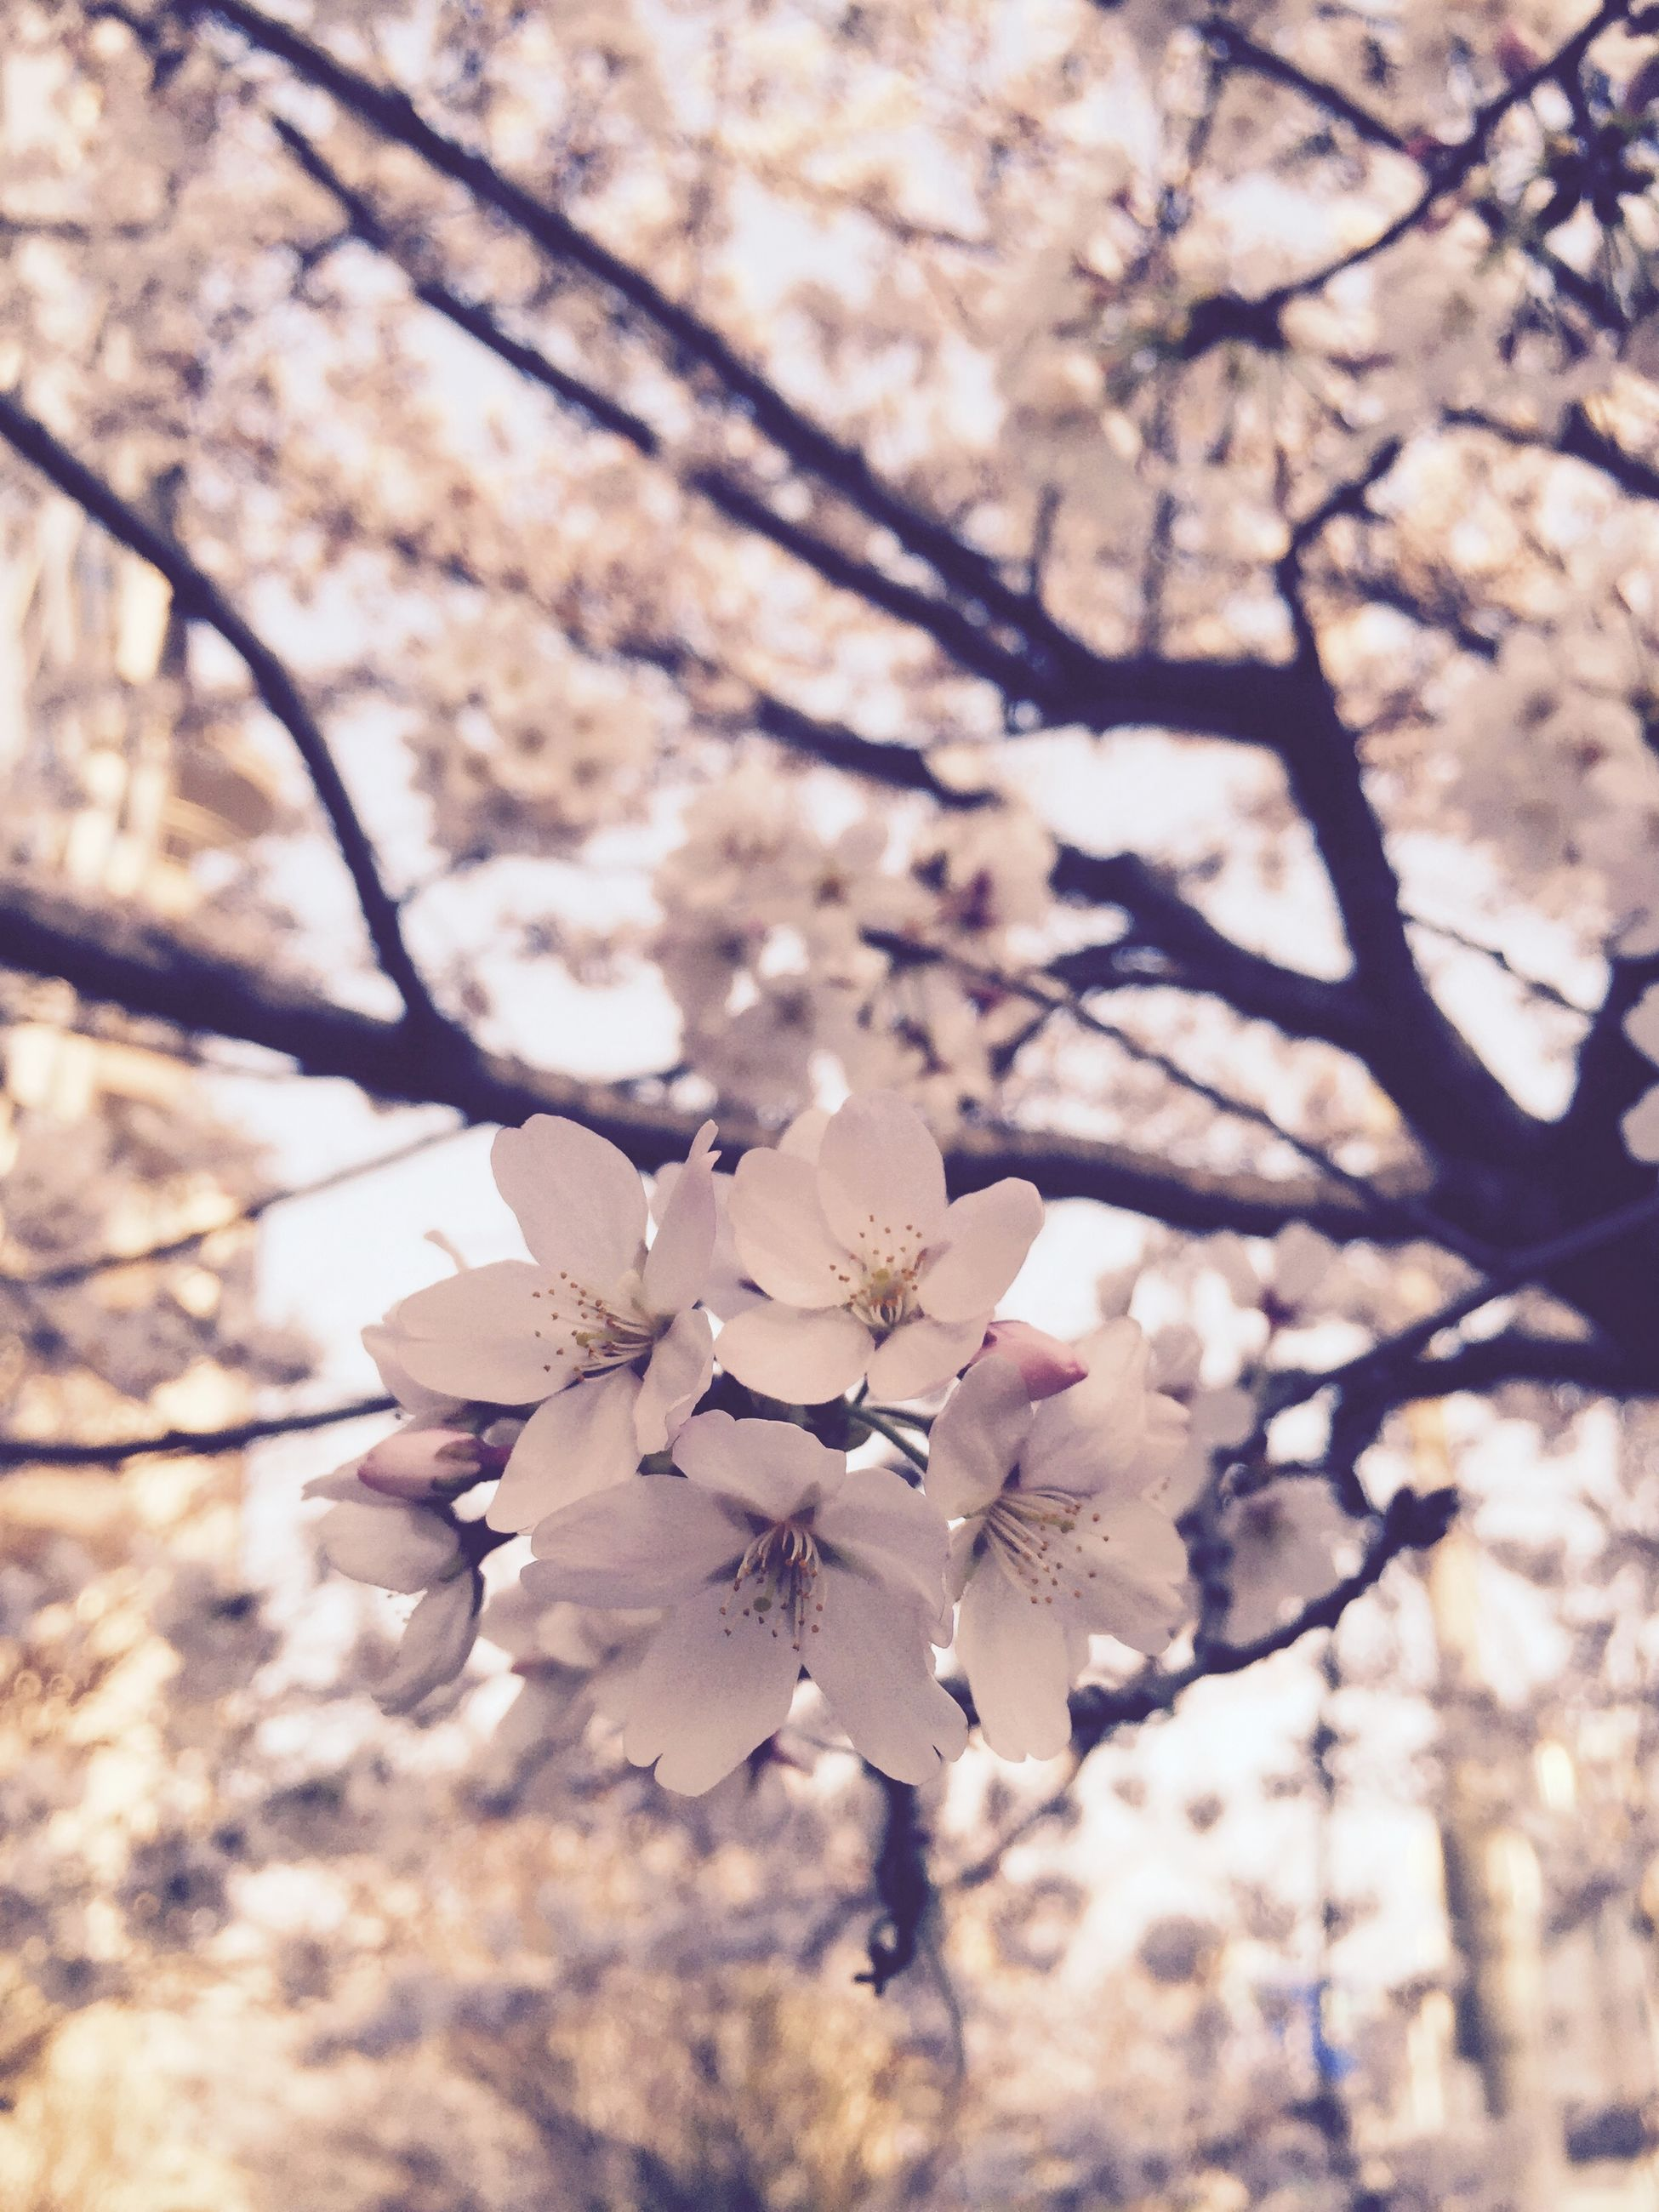 branch, tree, flower, growth, beauty in nature, freshness, nature, cherry blossom, low angle view, blossom, fragility, cherry tree, focus on foreground, springtime, twig, close-up, season, outdoors, day, in bloom